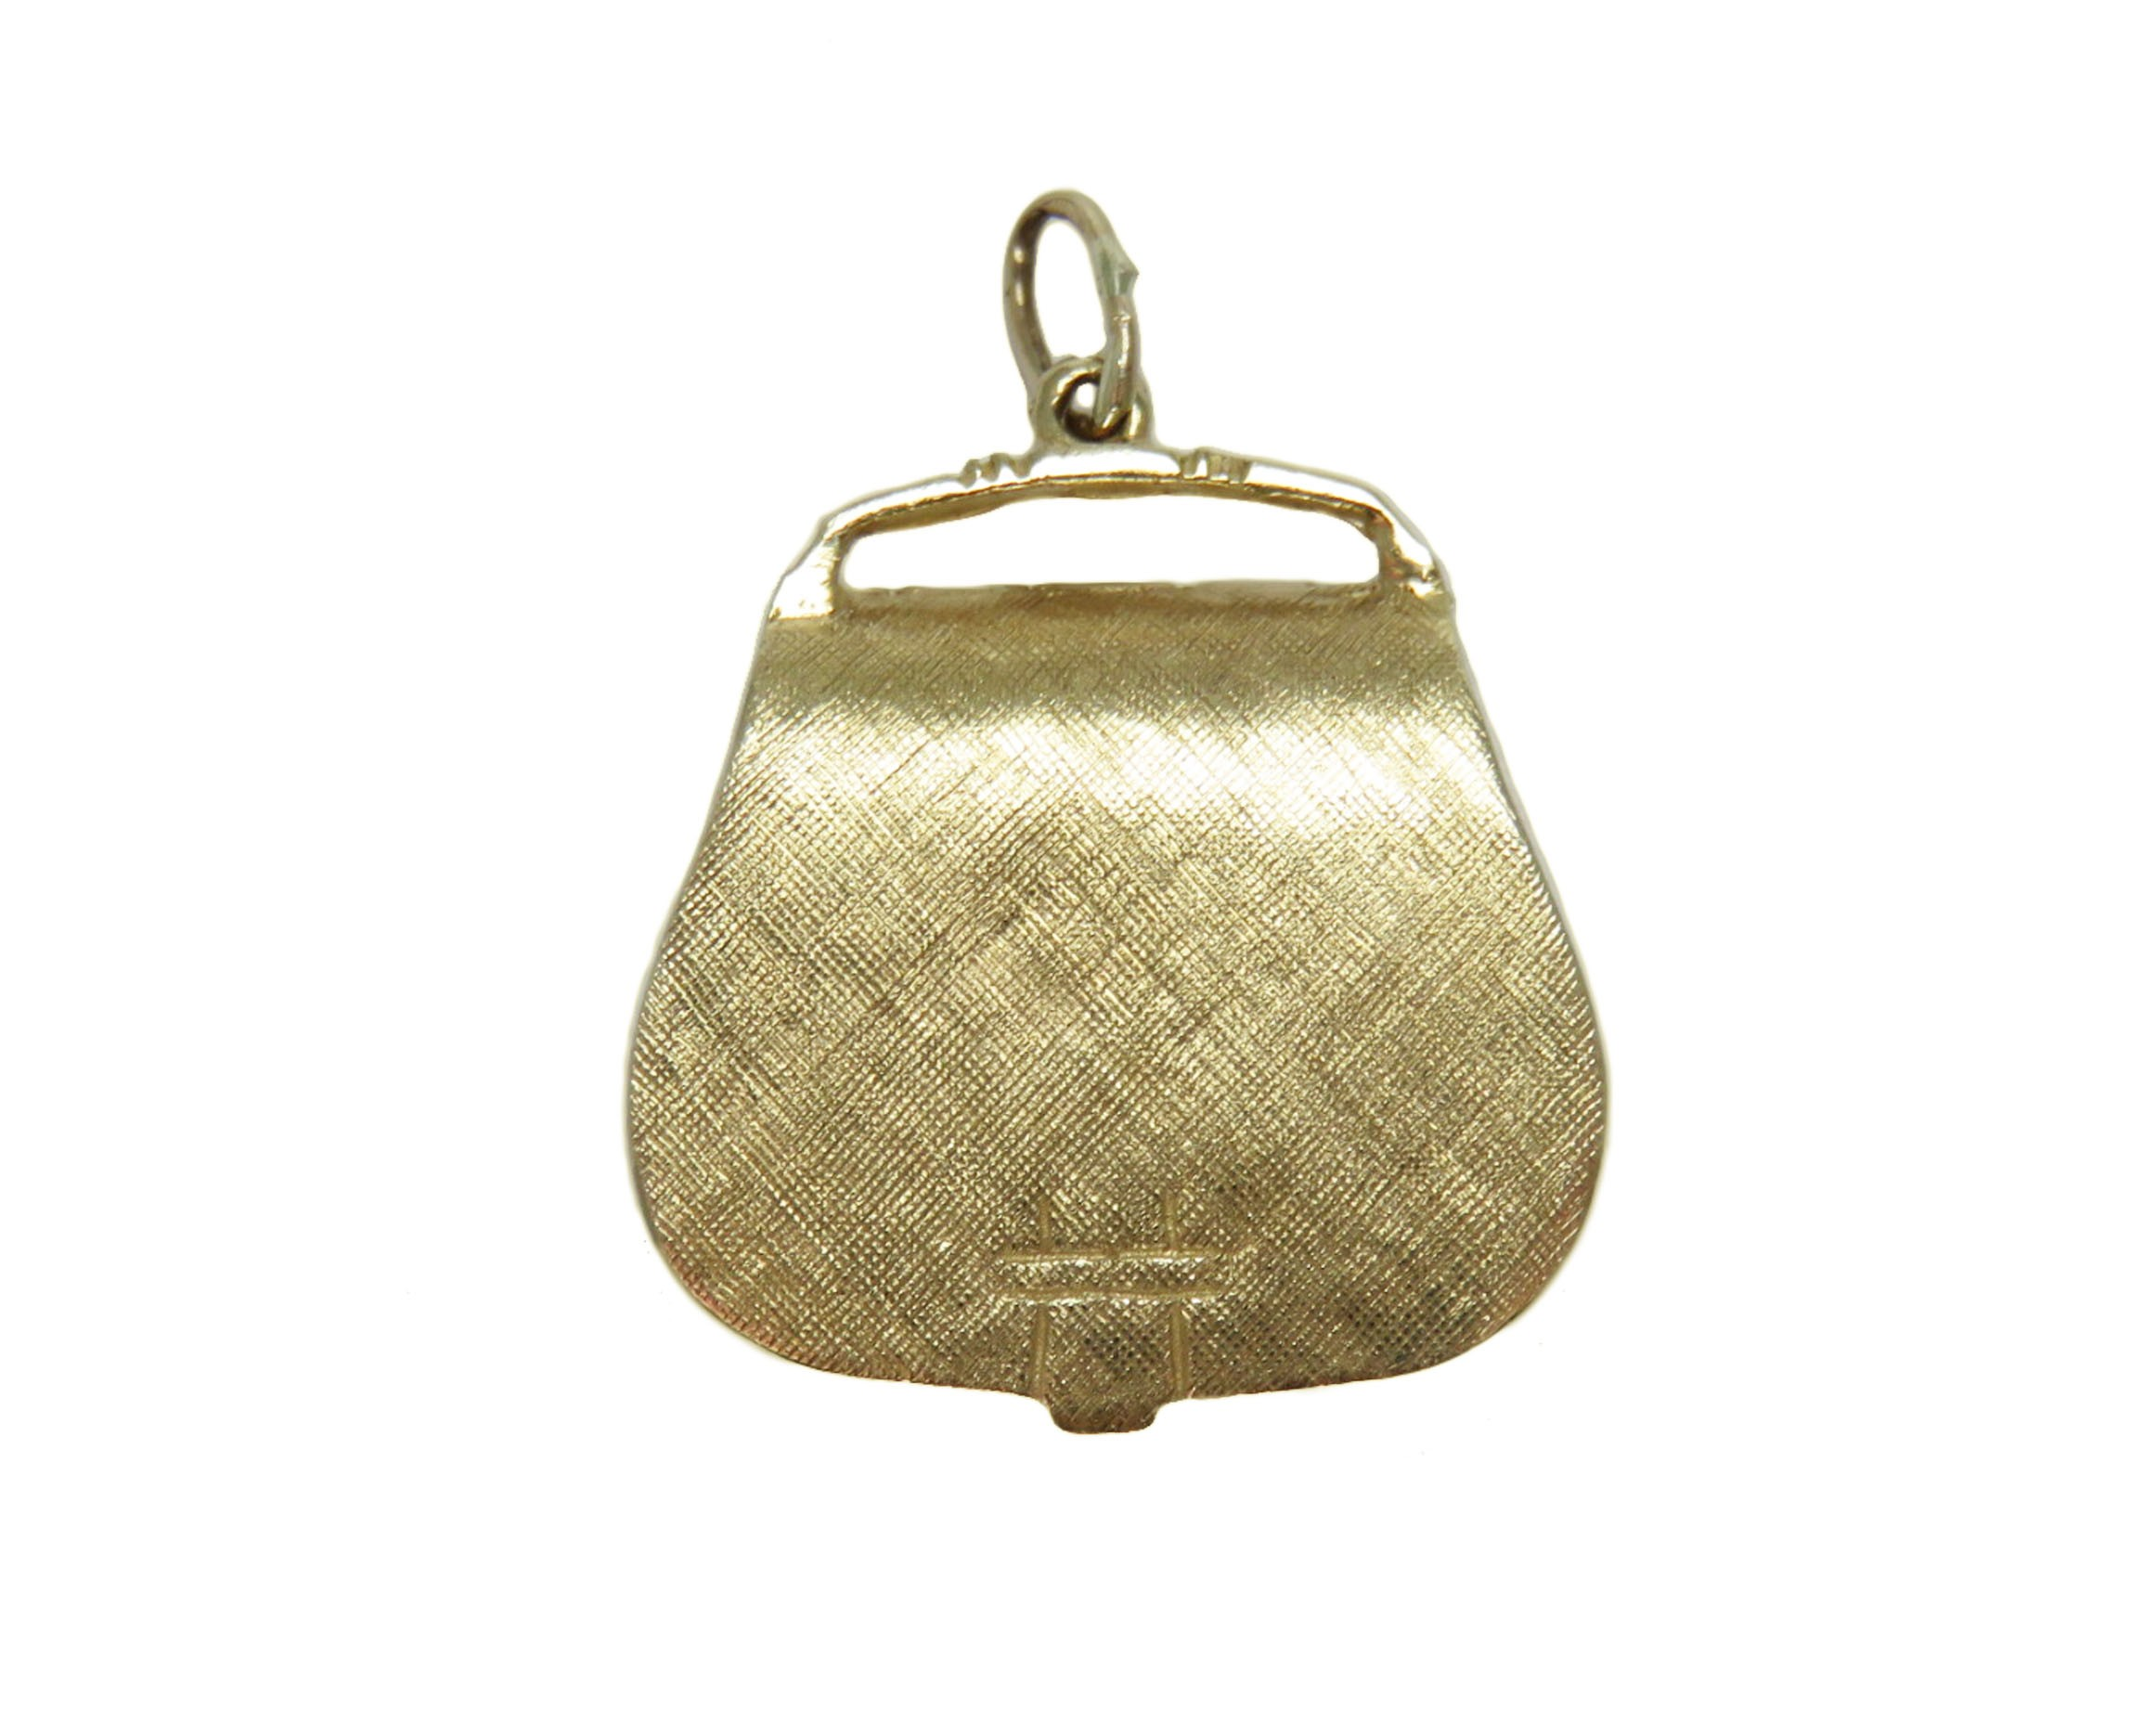 Estate Money Bag Charm